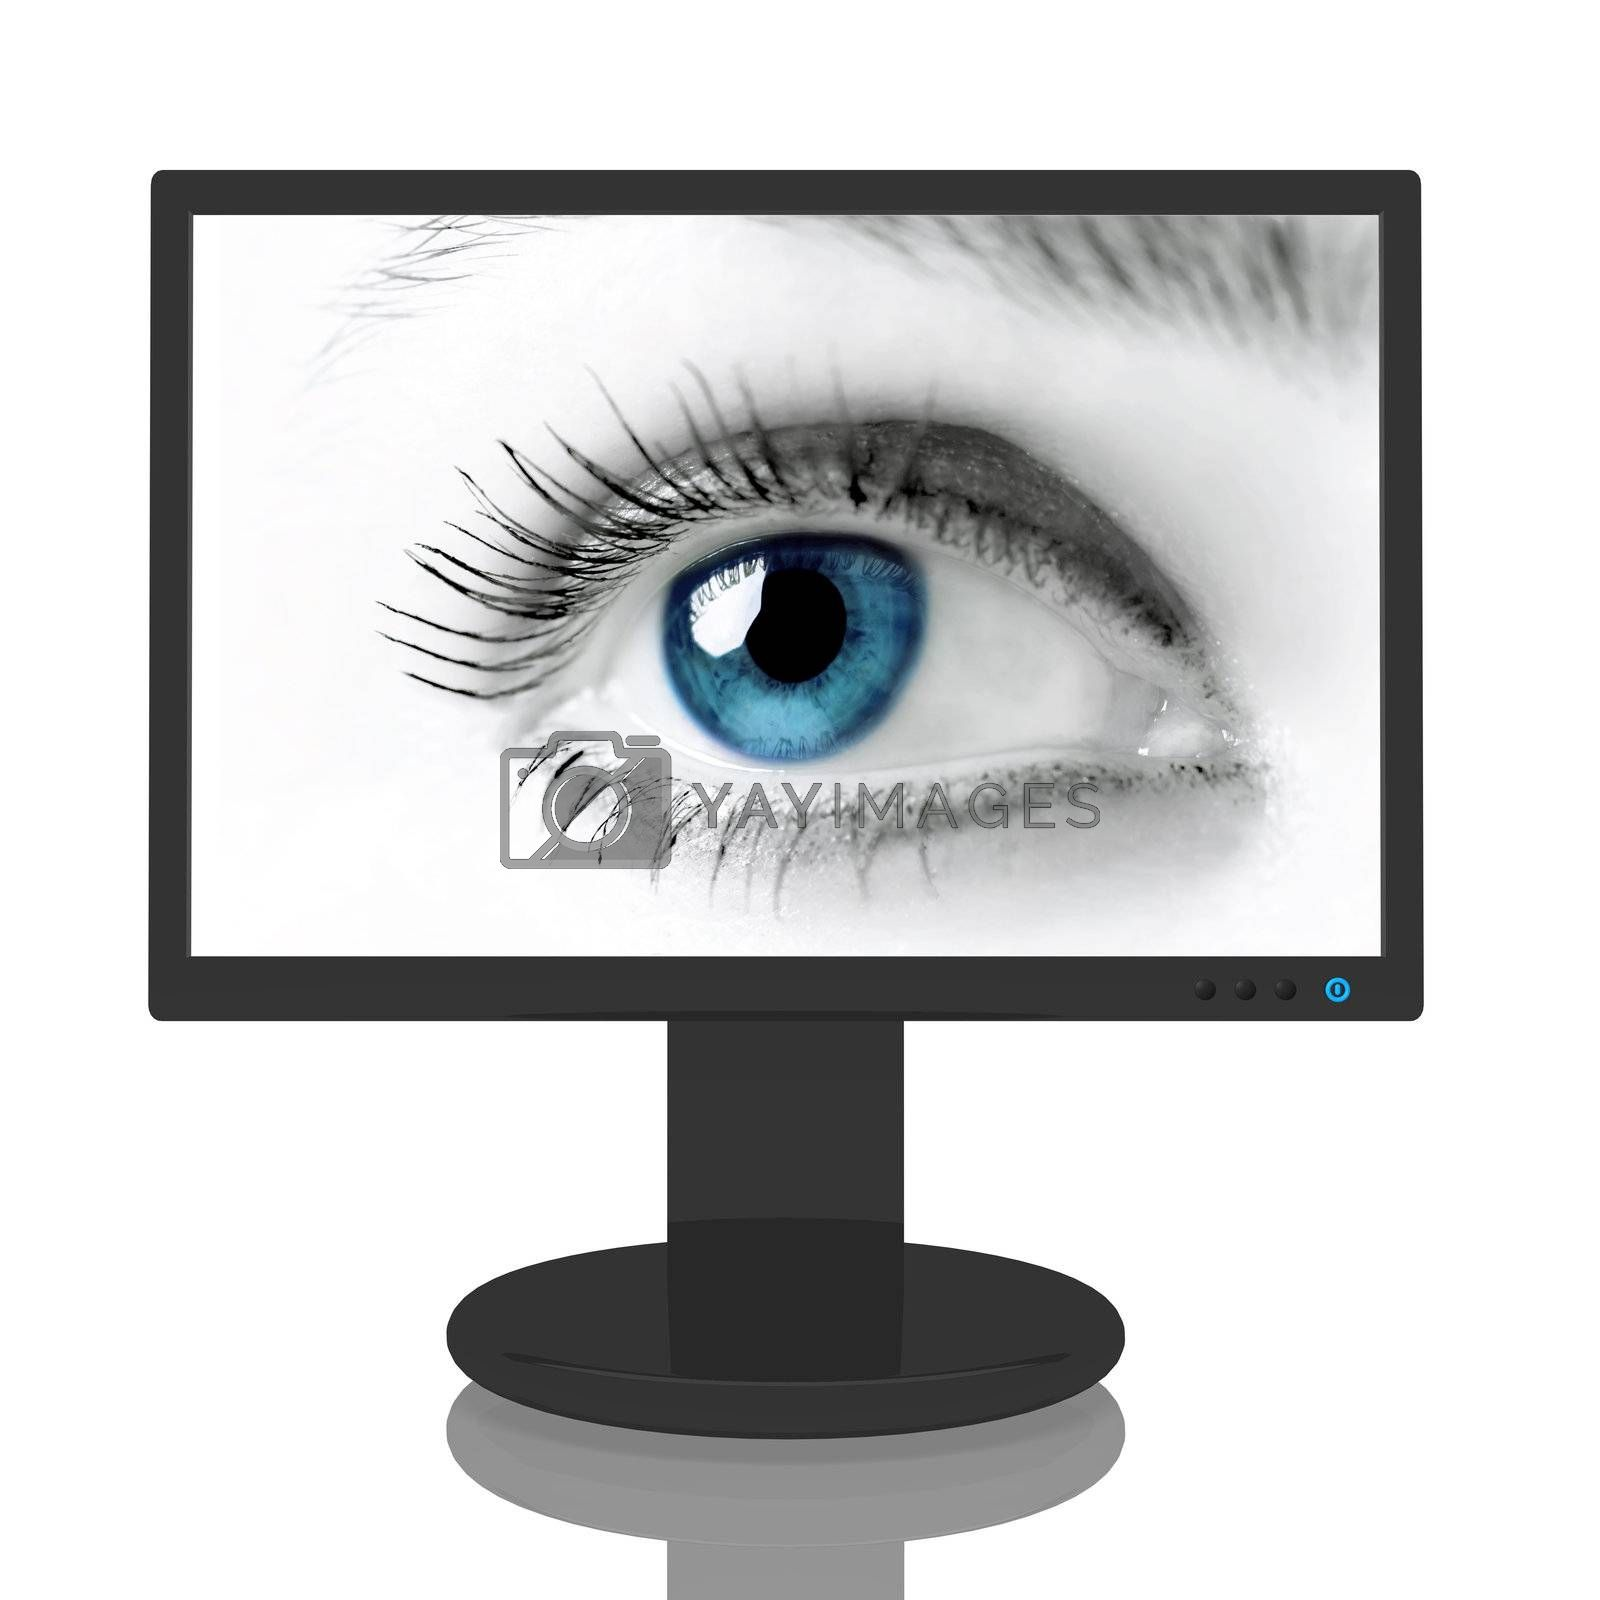 Computer screen with image of a blue eye.